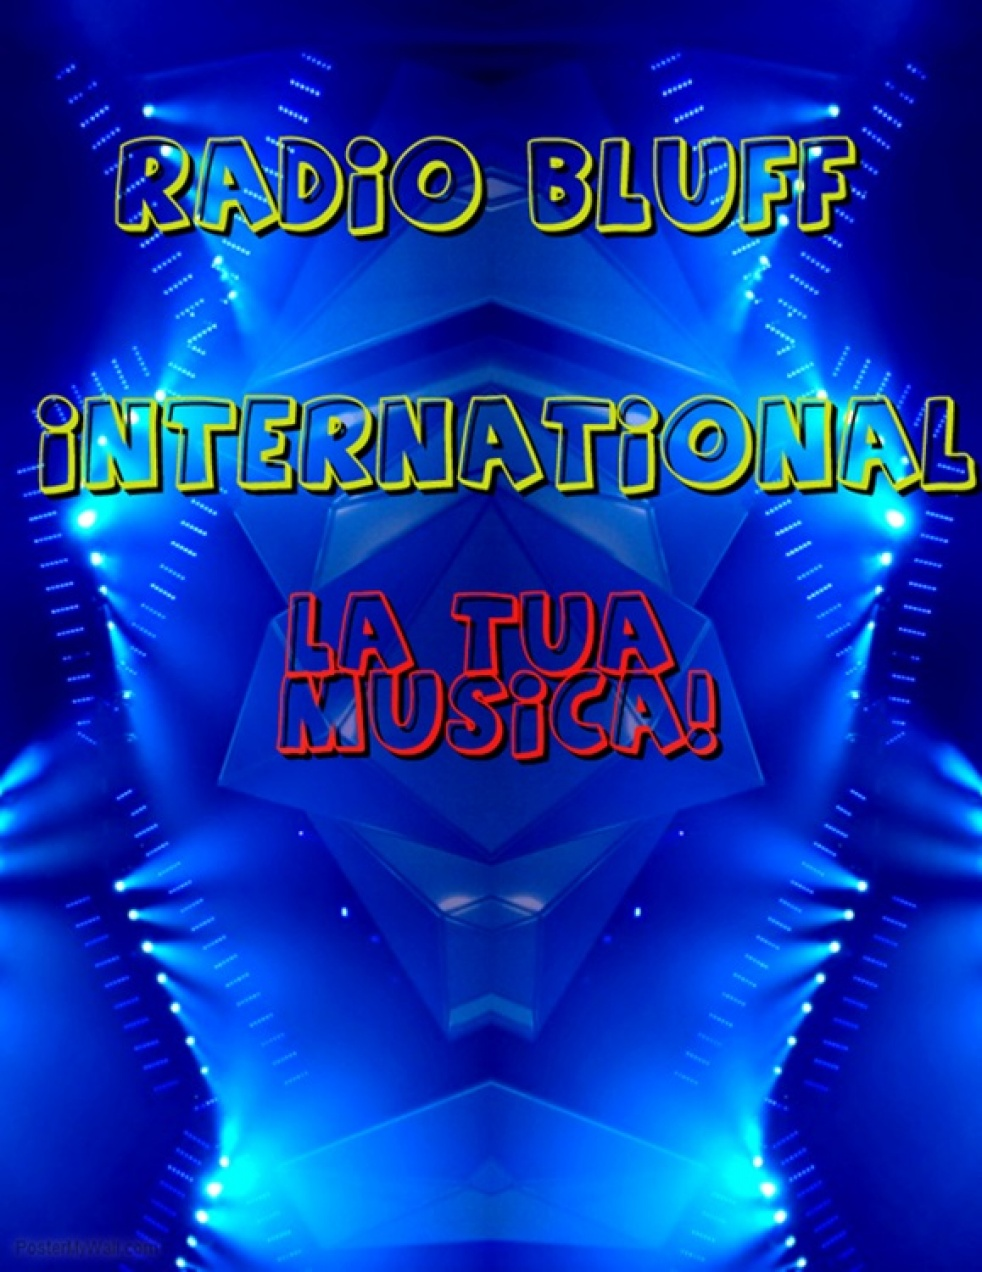 RADIO BLUFF INTERNATIONAL - imagen de show de portada